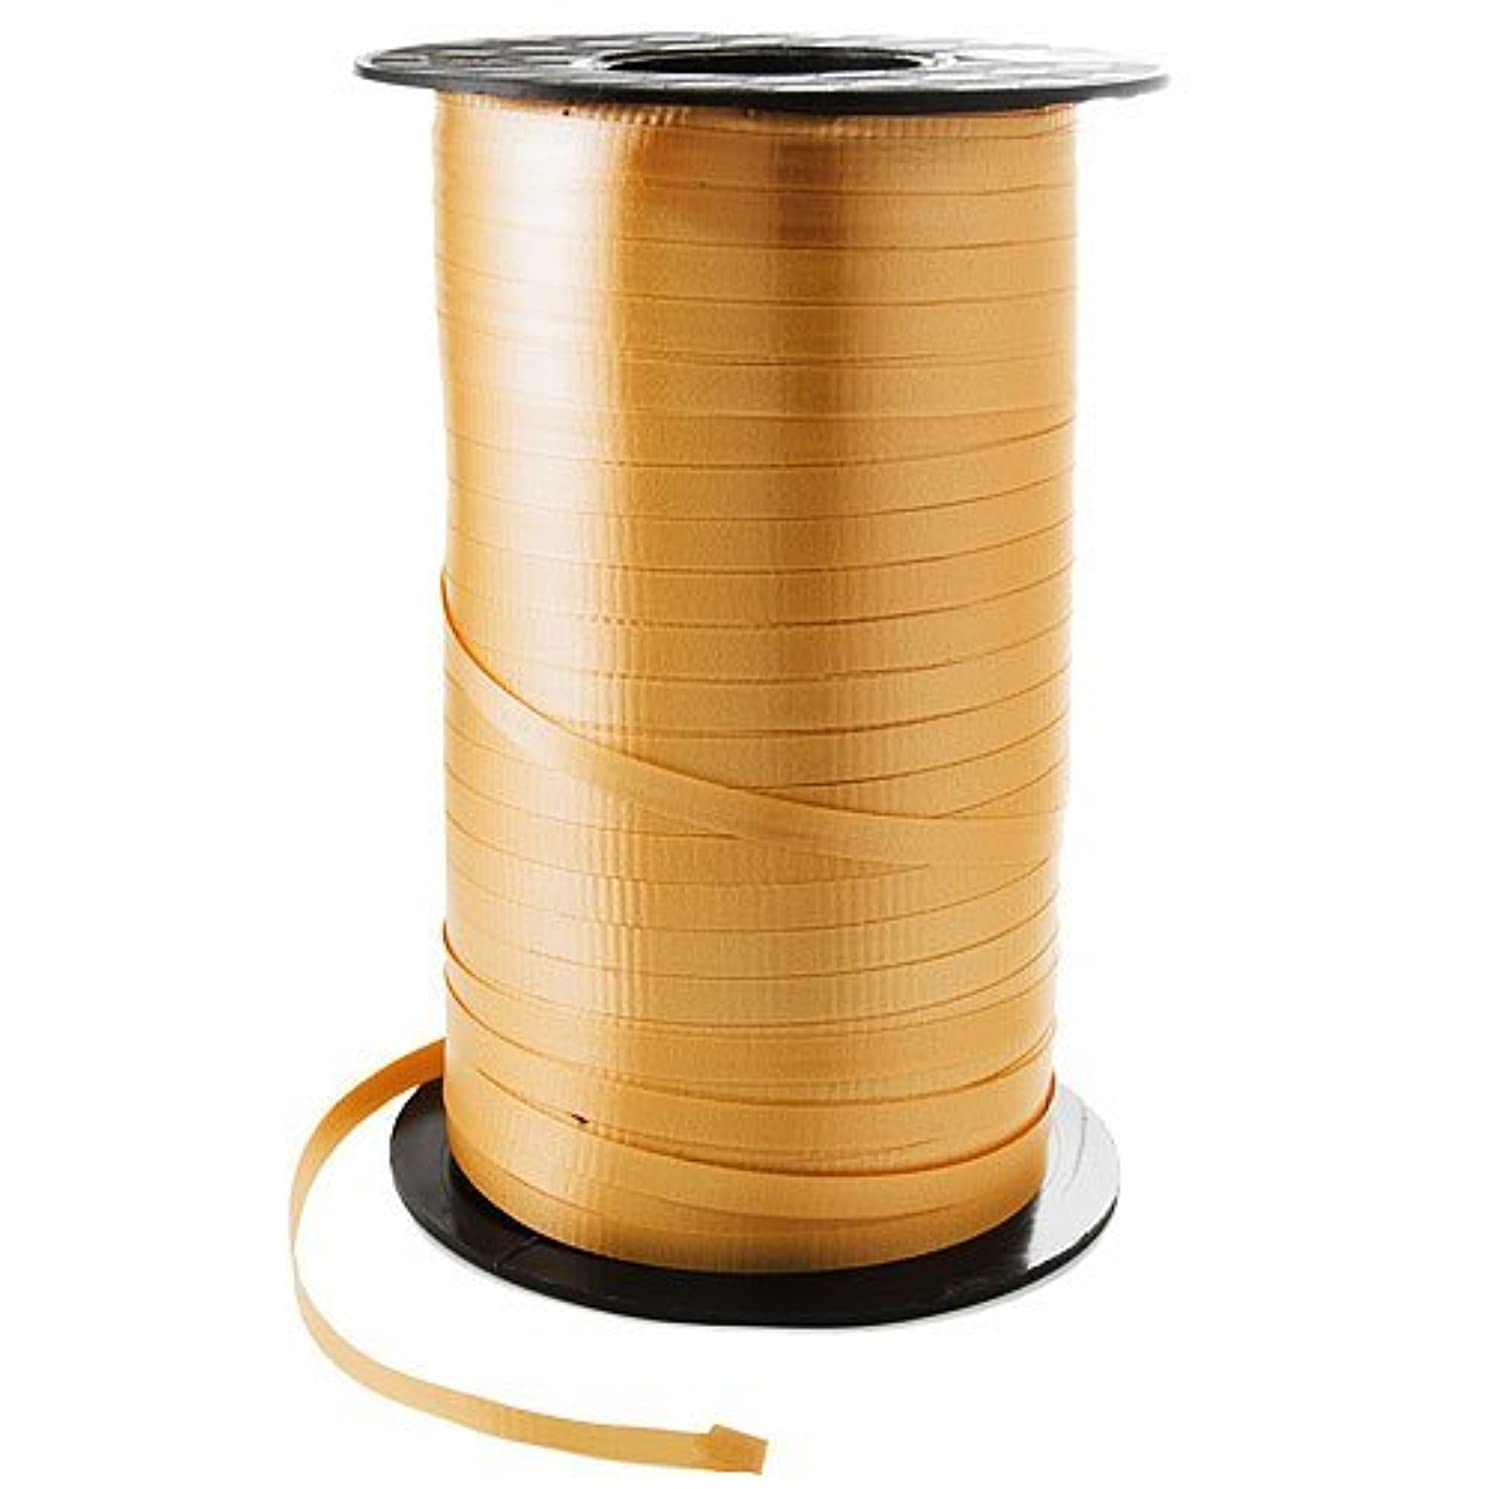 3/16 Crimped Curling Ribbon 500 Yards Spool, GOLD Color for Gift Wrapping by UFindings